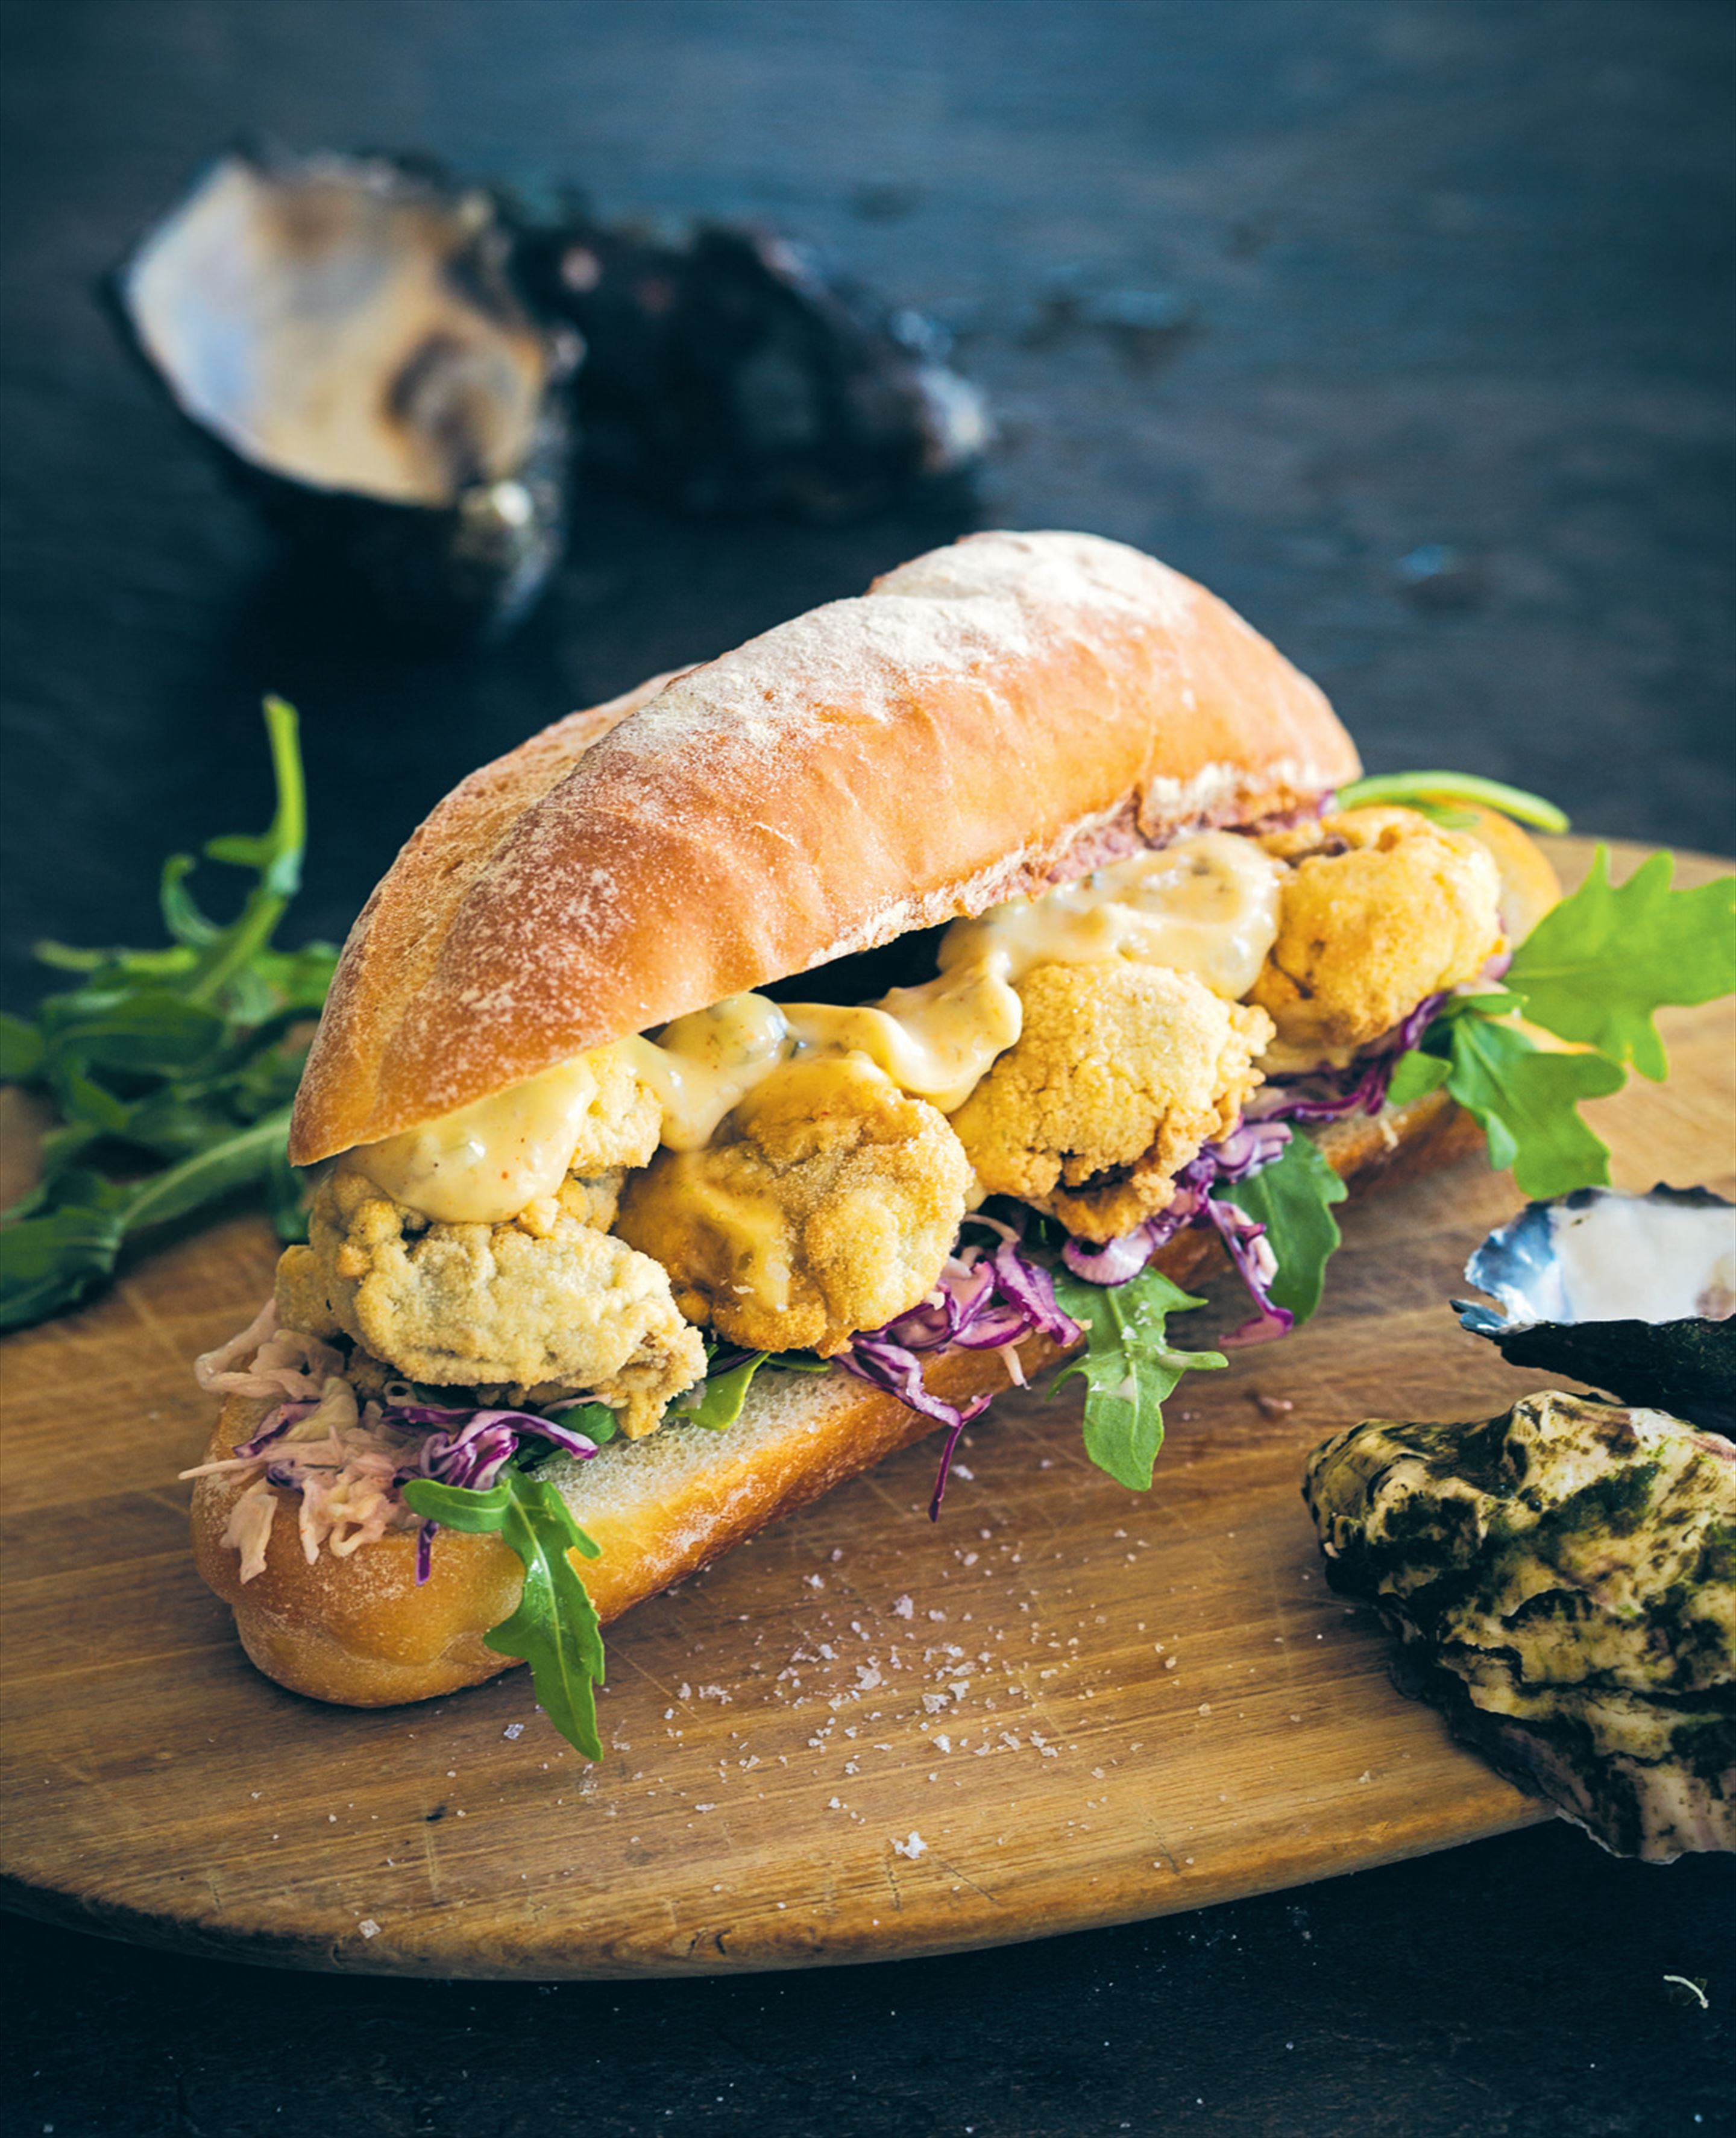 Spicy oyster po' boy